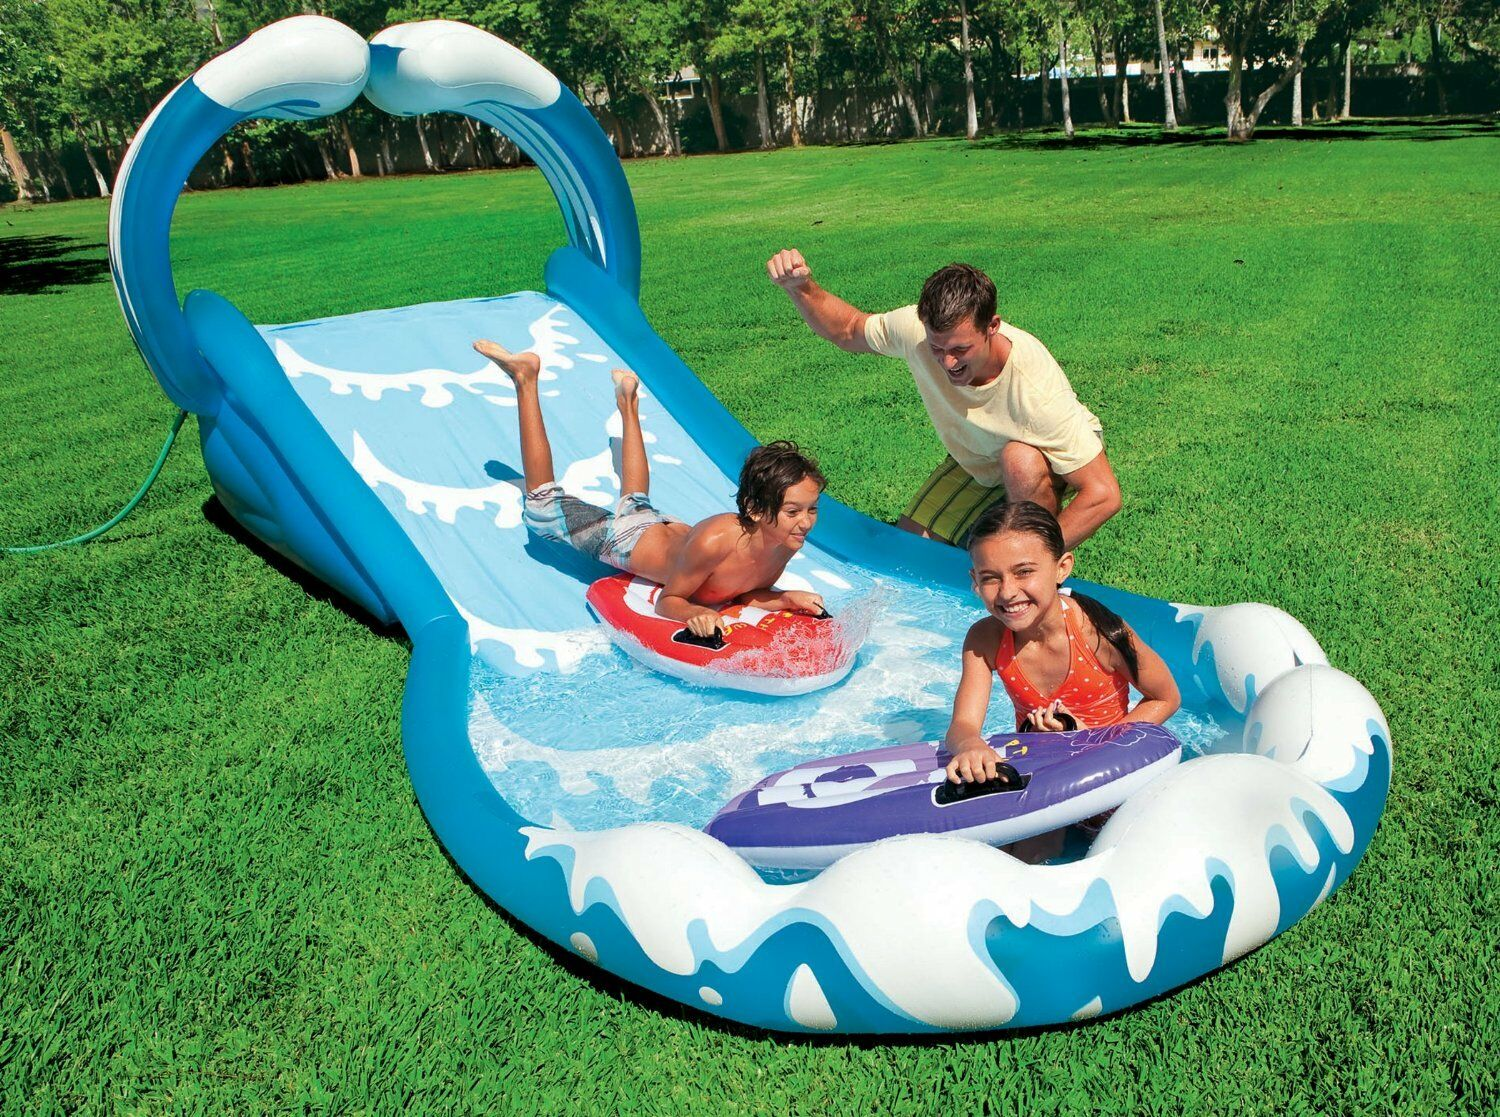 water slide commercial pool park kids wet bounce outdoor backyard toy